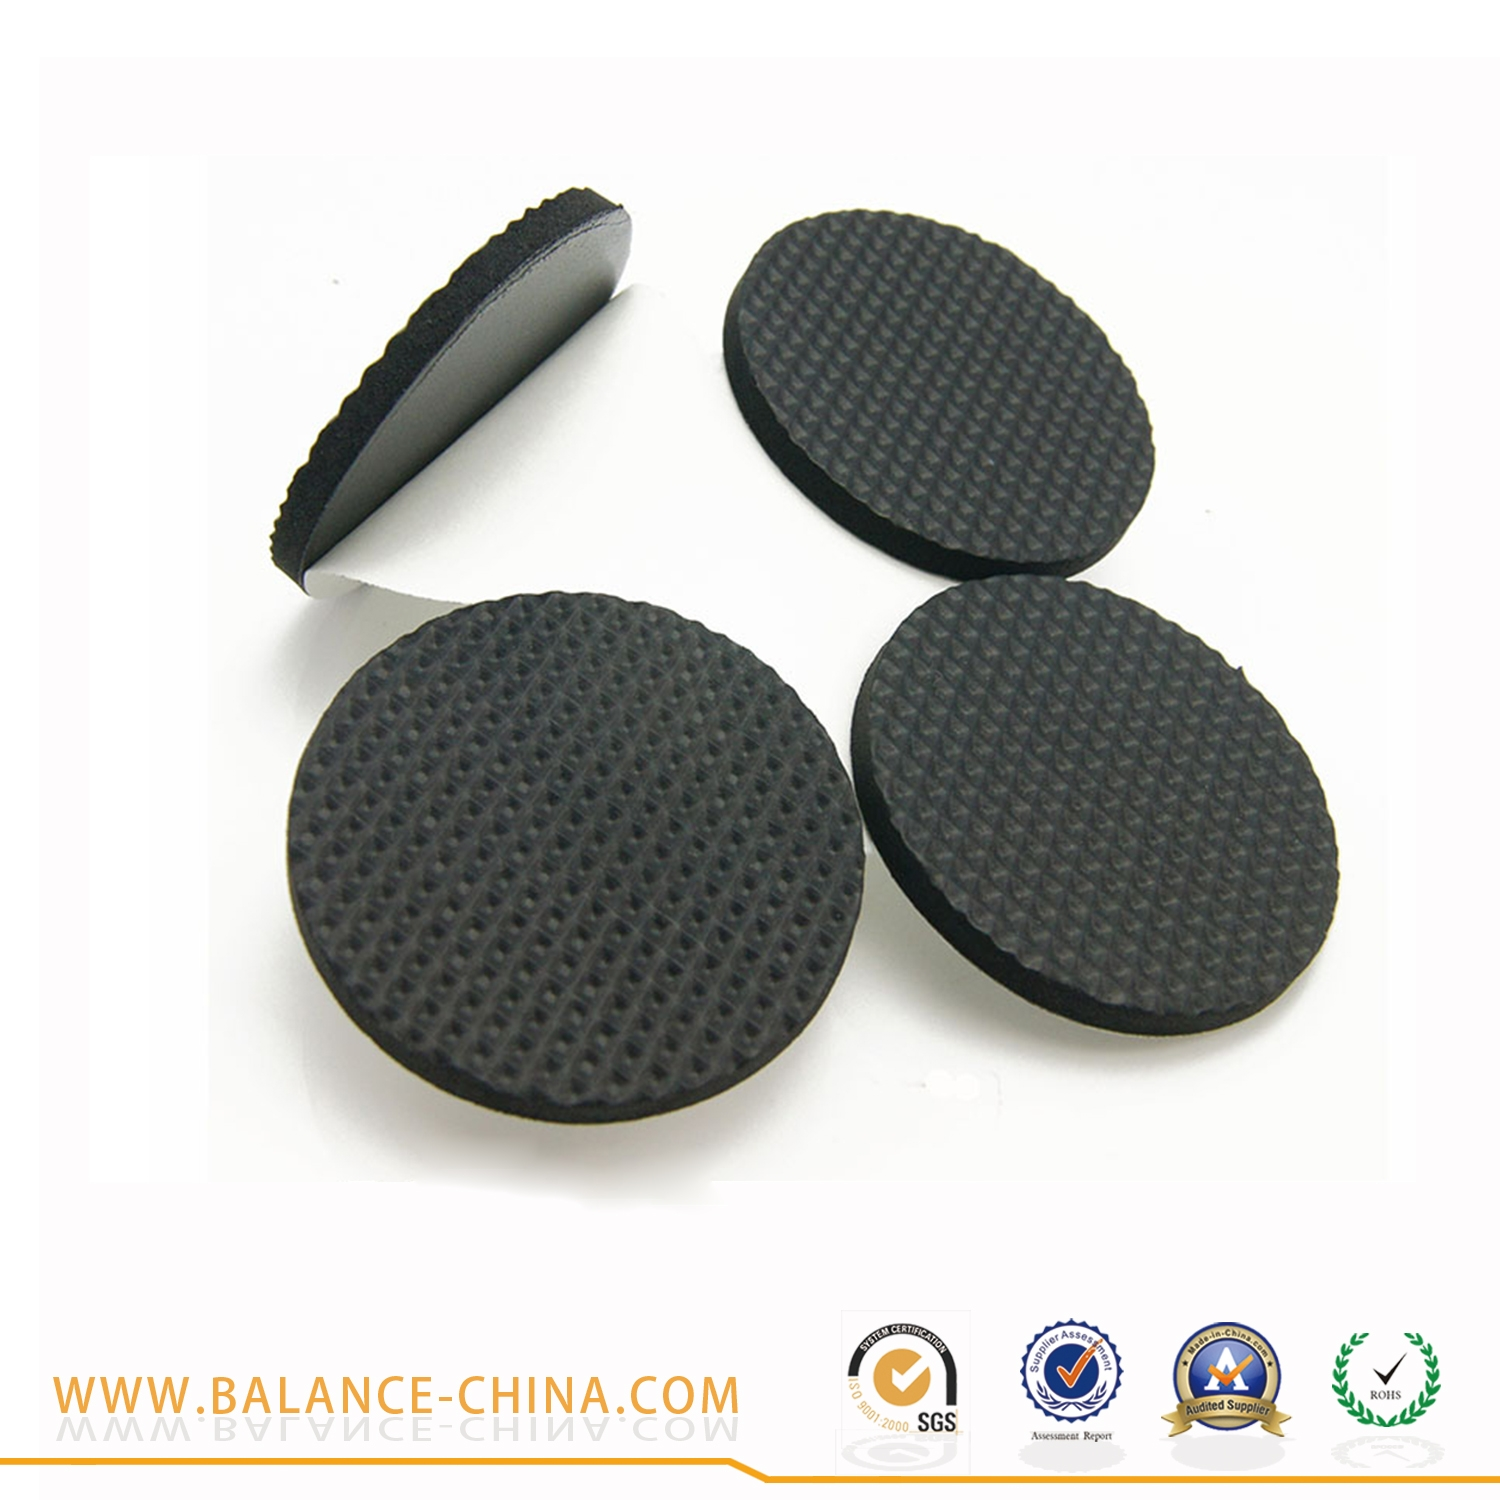 Eva Pad For Furniture Eva Pad Of Chinese Suppliers Baby